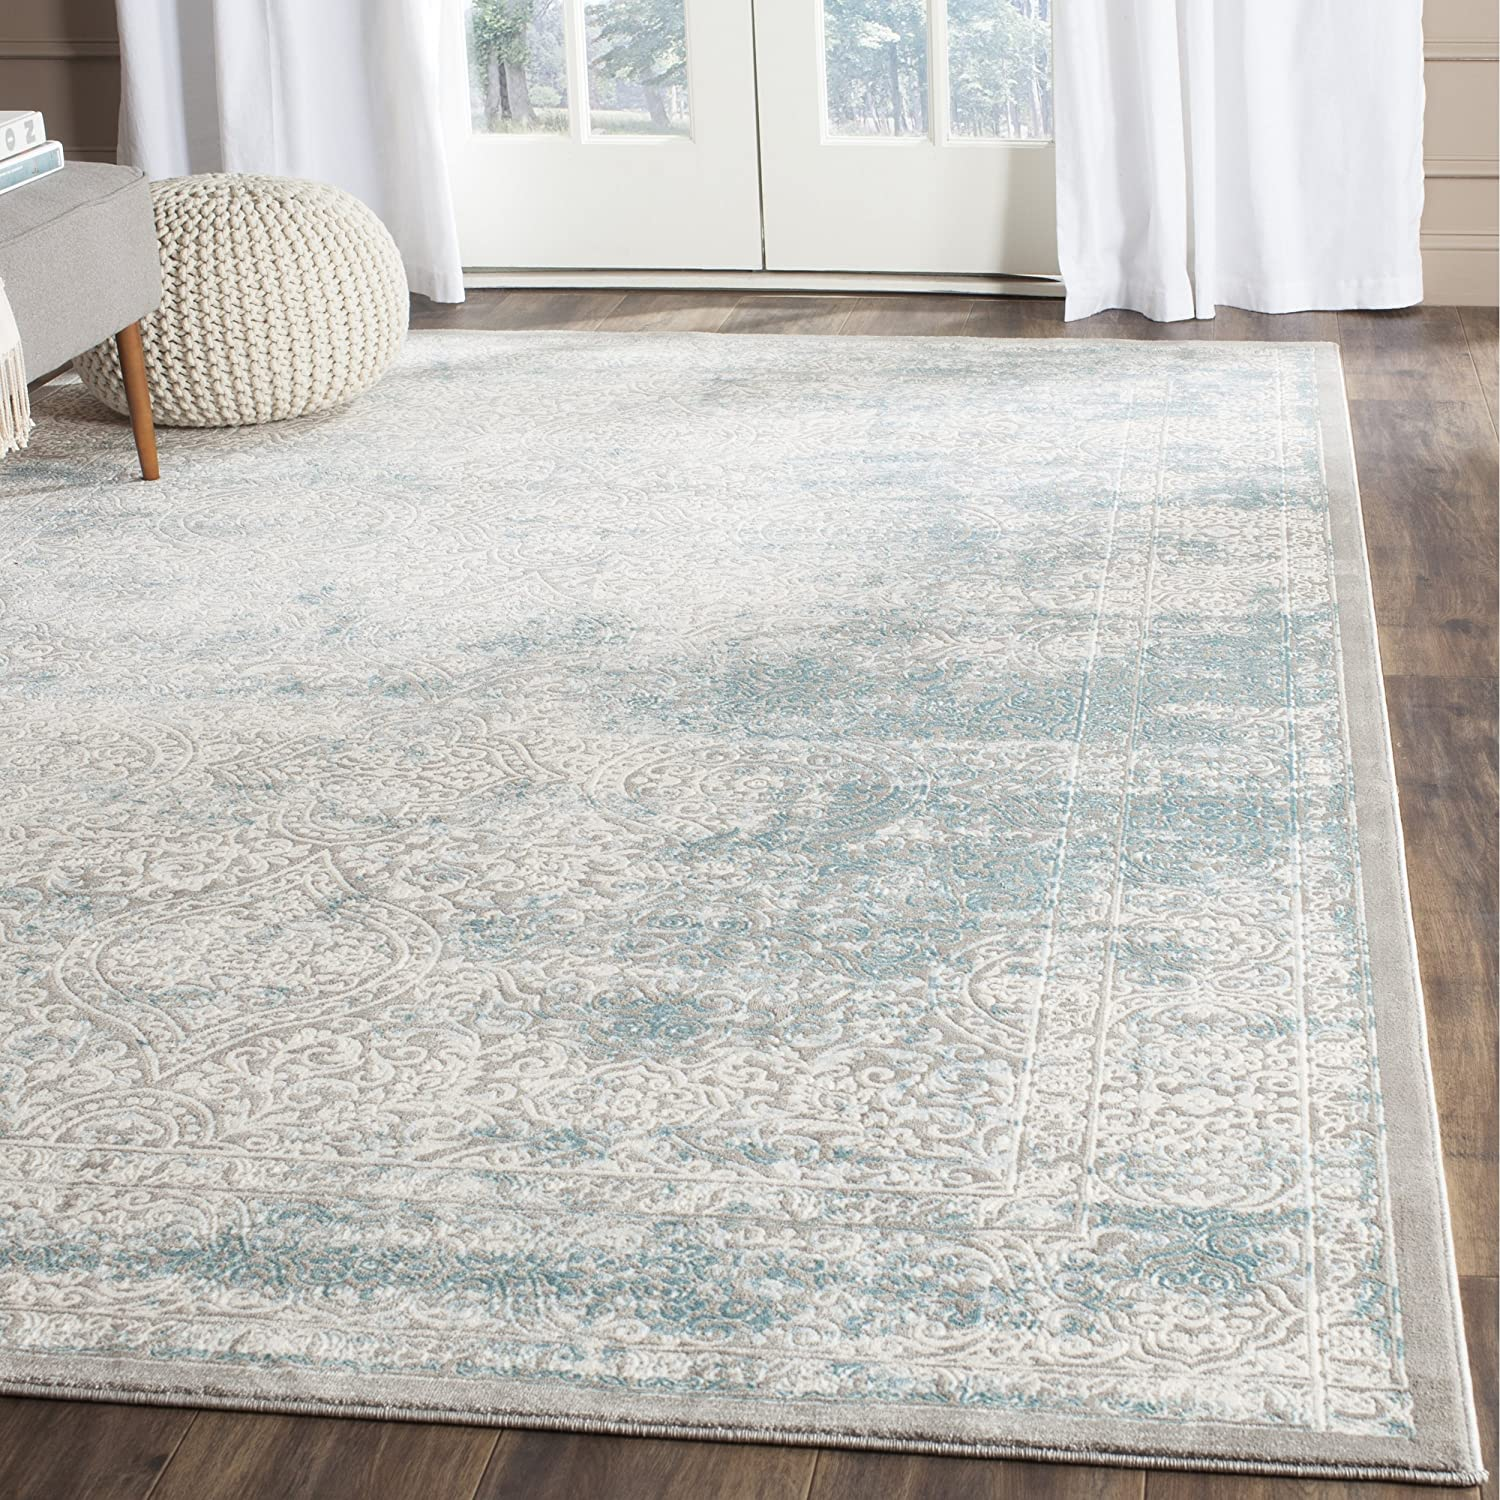 turquoise hand collections piece rugs tagged brown tufted addiction design gray all and set grey products area with black pad rug shaggy large